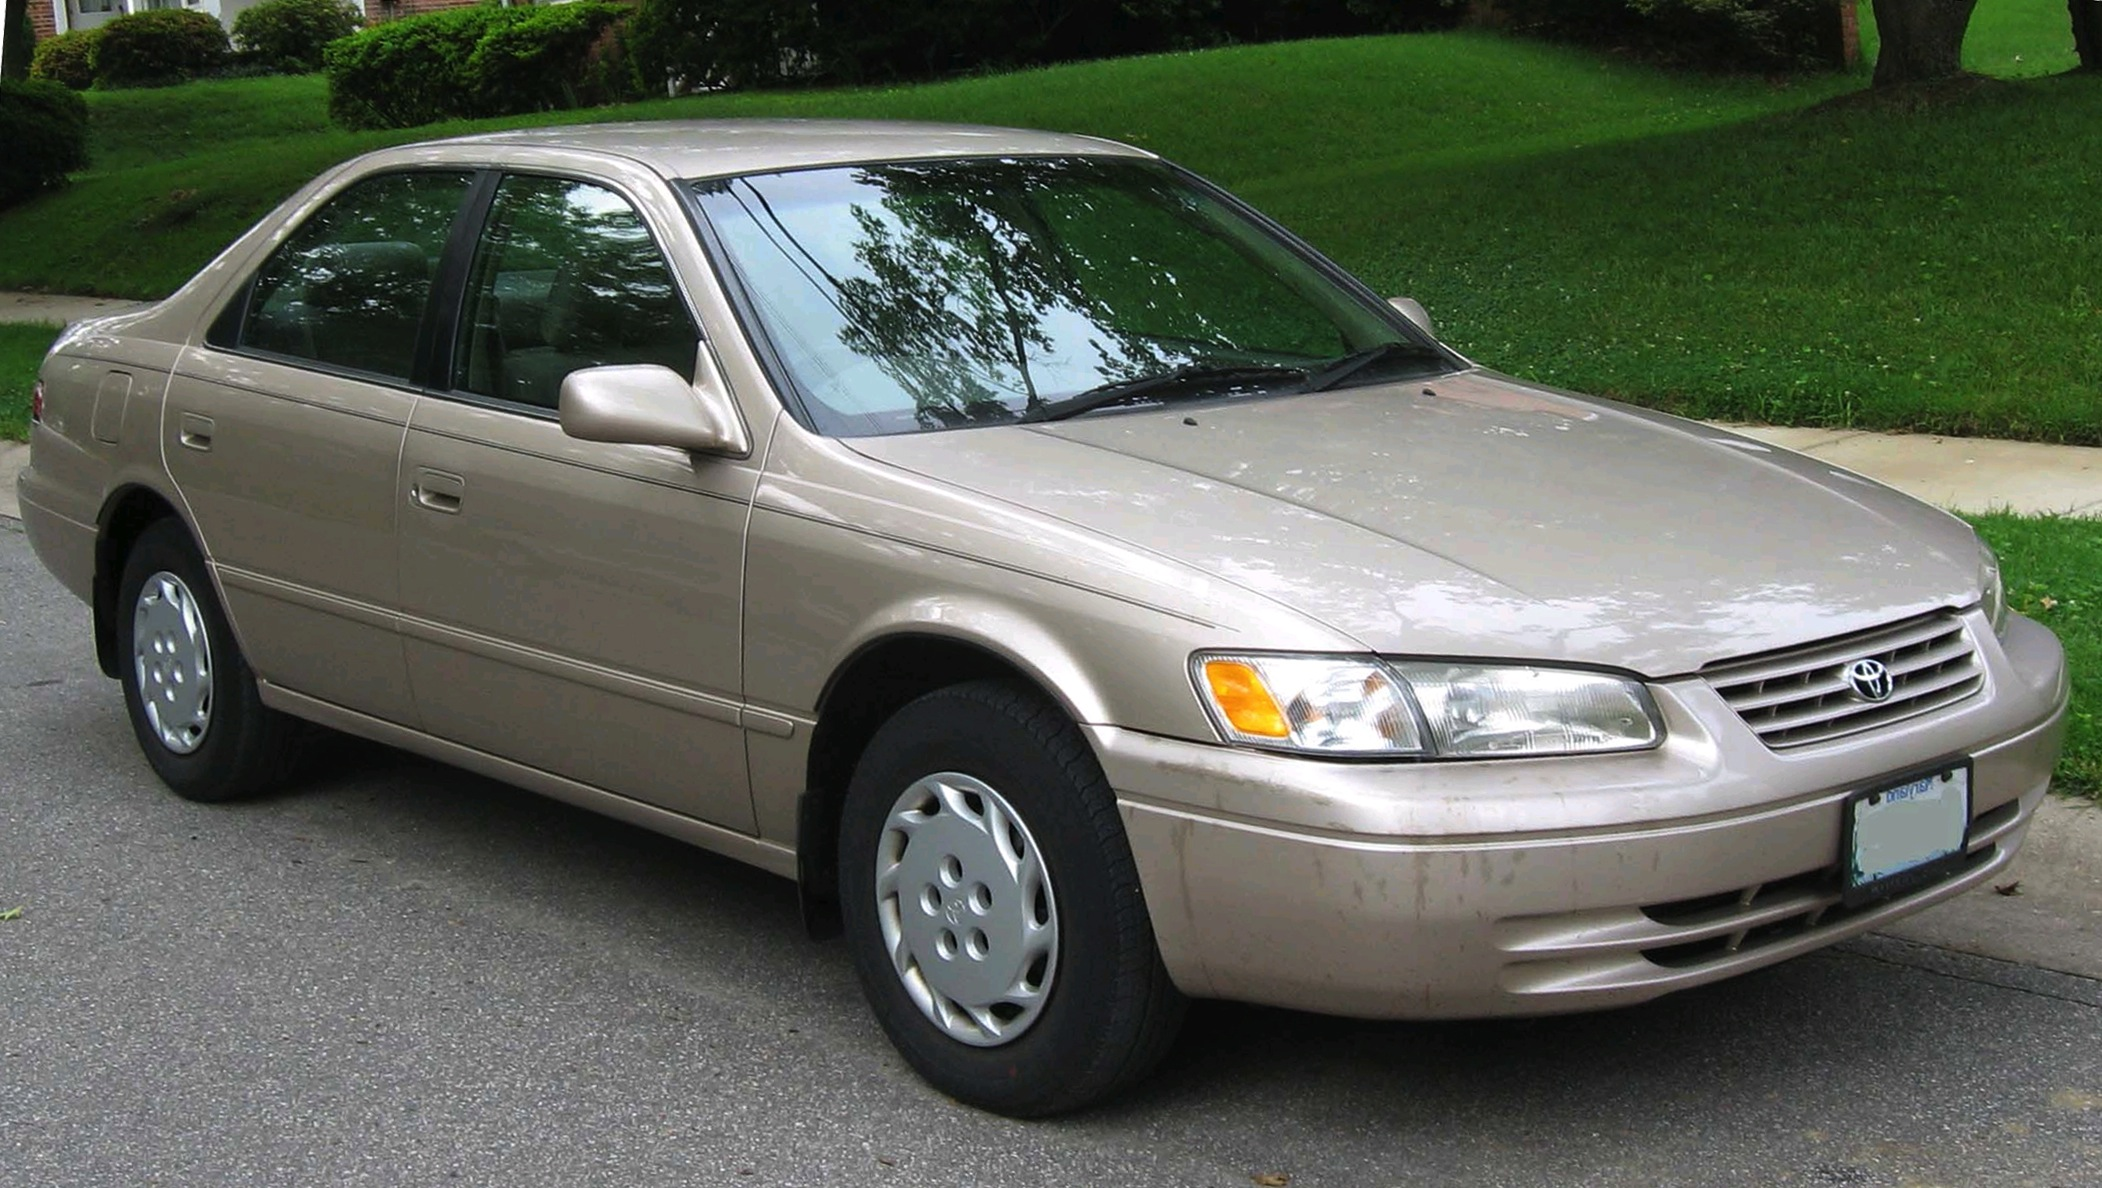 1989 Acura Integra >> Top 10 Most Stolen Cars In Vancouver - 604 Now